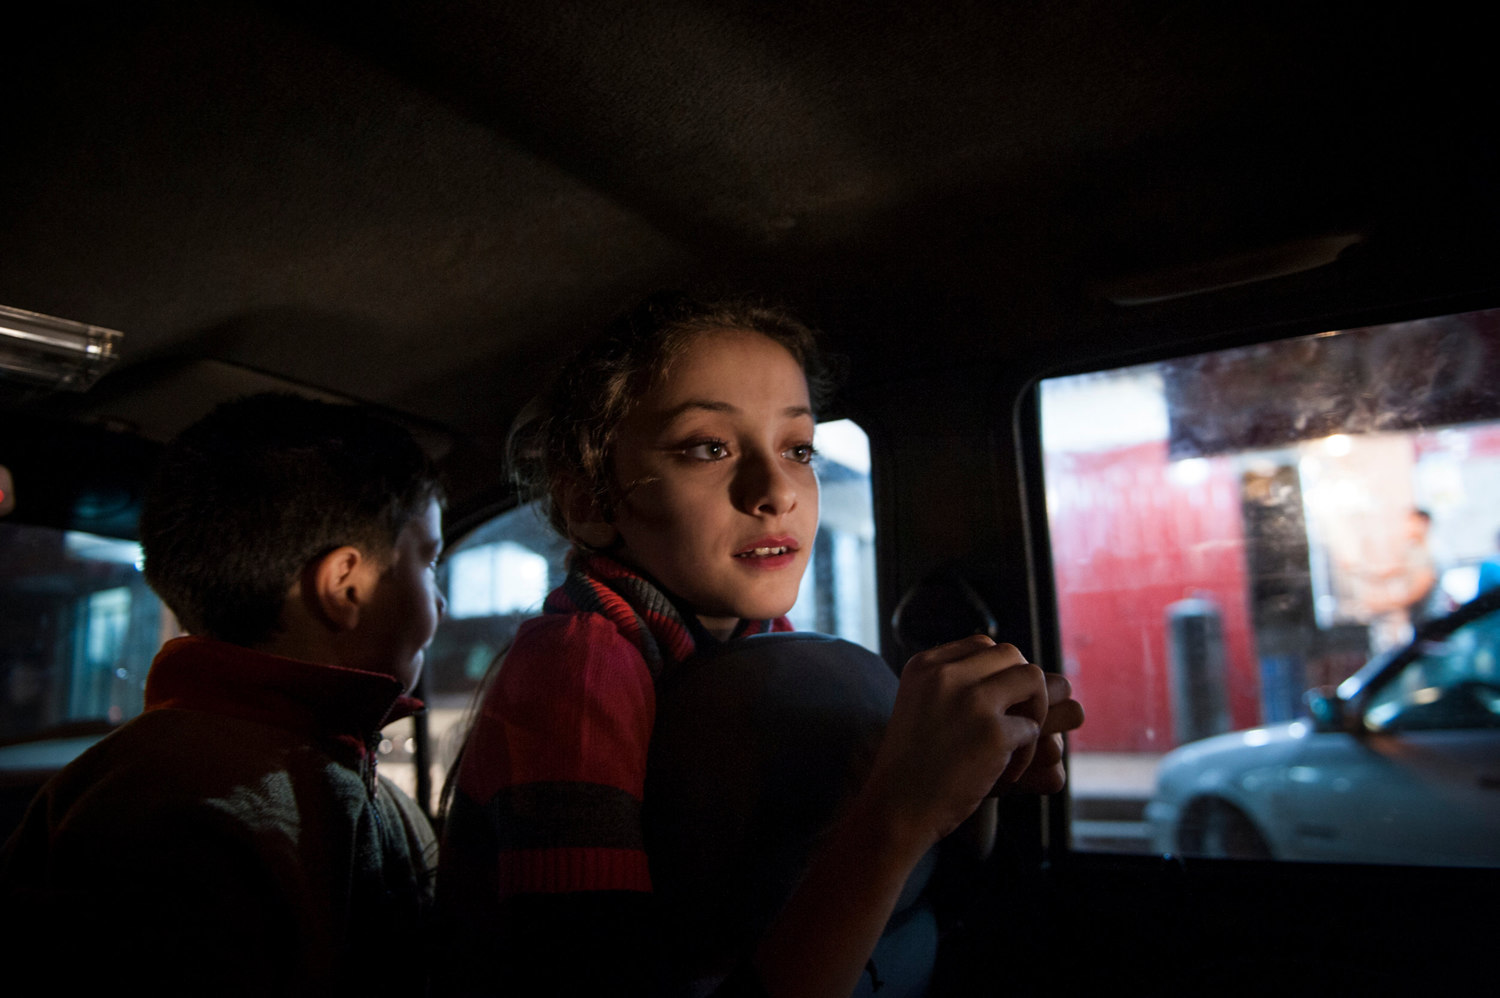 Yara and her brother waiting for their father to return with schwarma as an evening treat after a recent conflict ended.